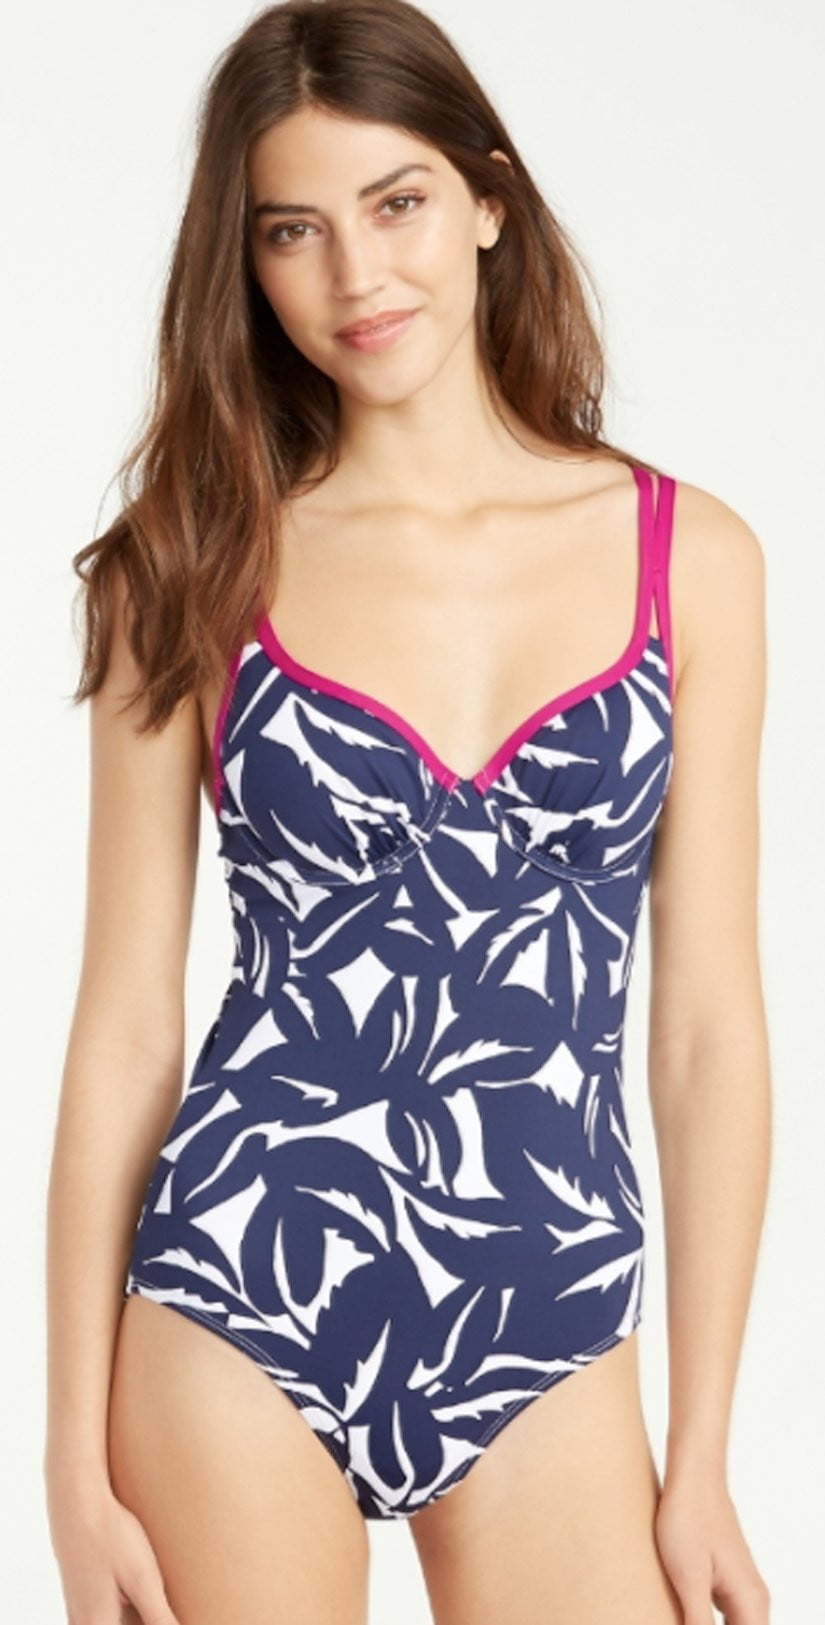 Tommy Bahama Graphic Jungle V Neck One Piece Swimsuit TSW31312P-15096MW: